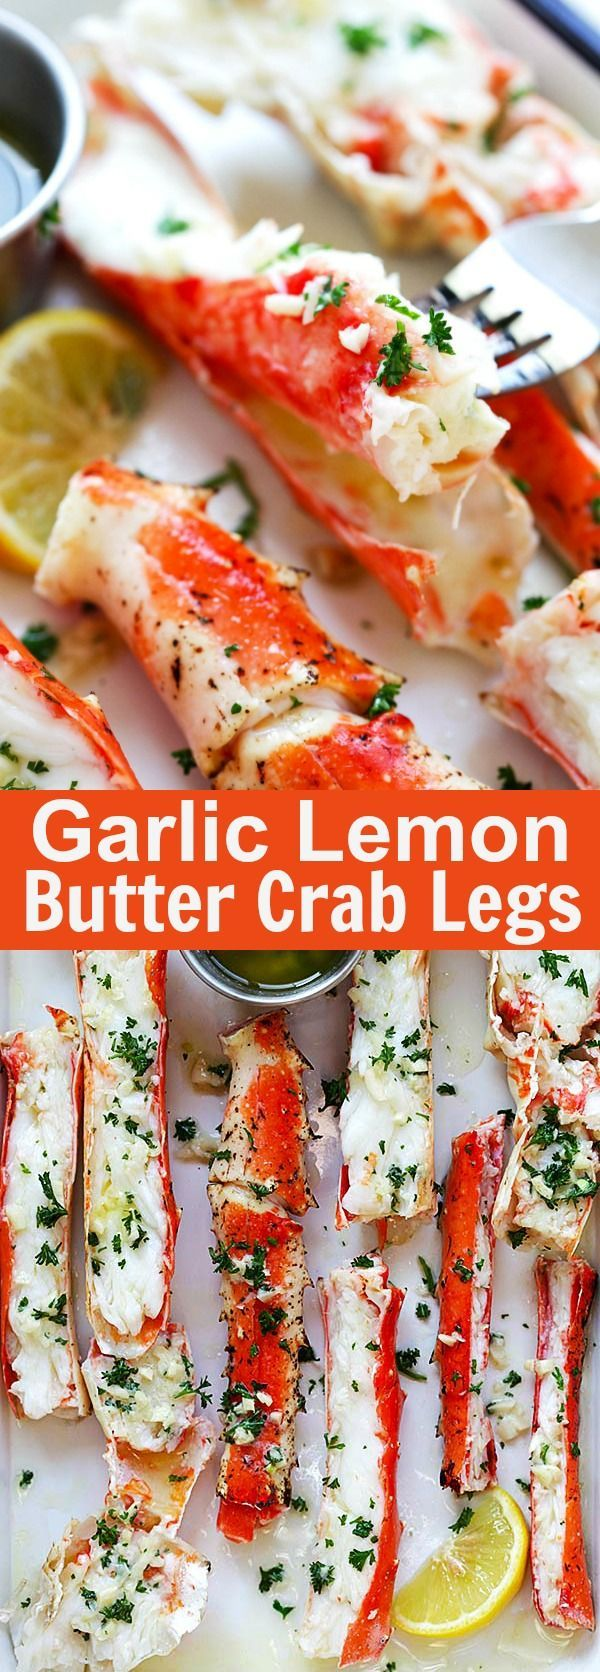 Garlic Lemon Butter Crab Legs – crazy delicious king crab legs in garlic herb and lemon butter. This crab legs recipe is so good you want it everyday | http://rasamalaysia.com